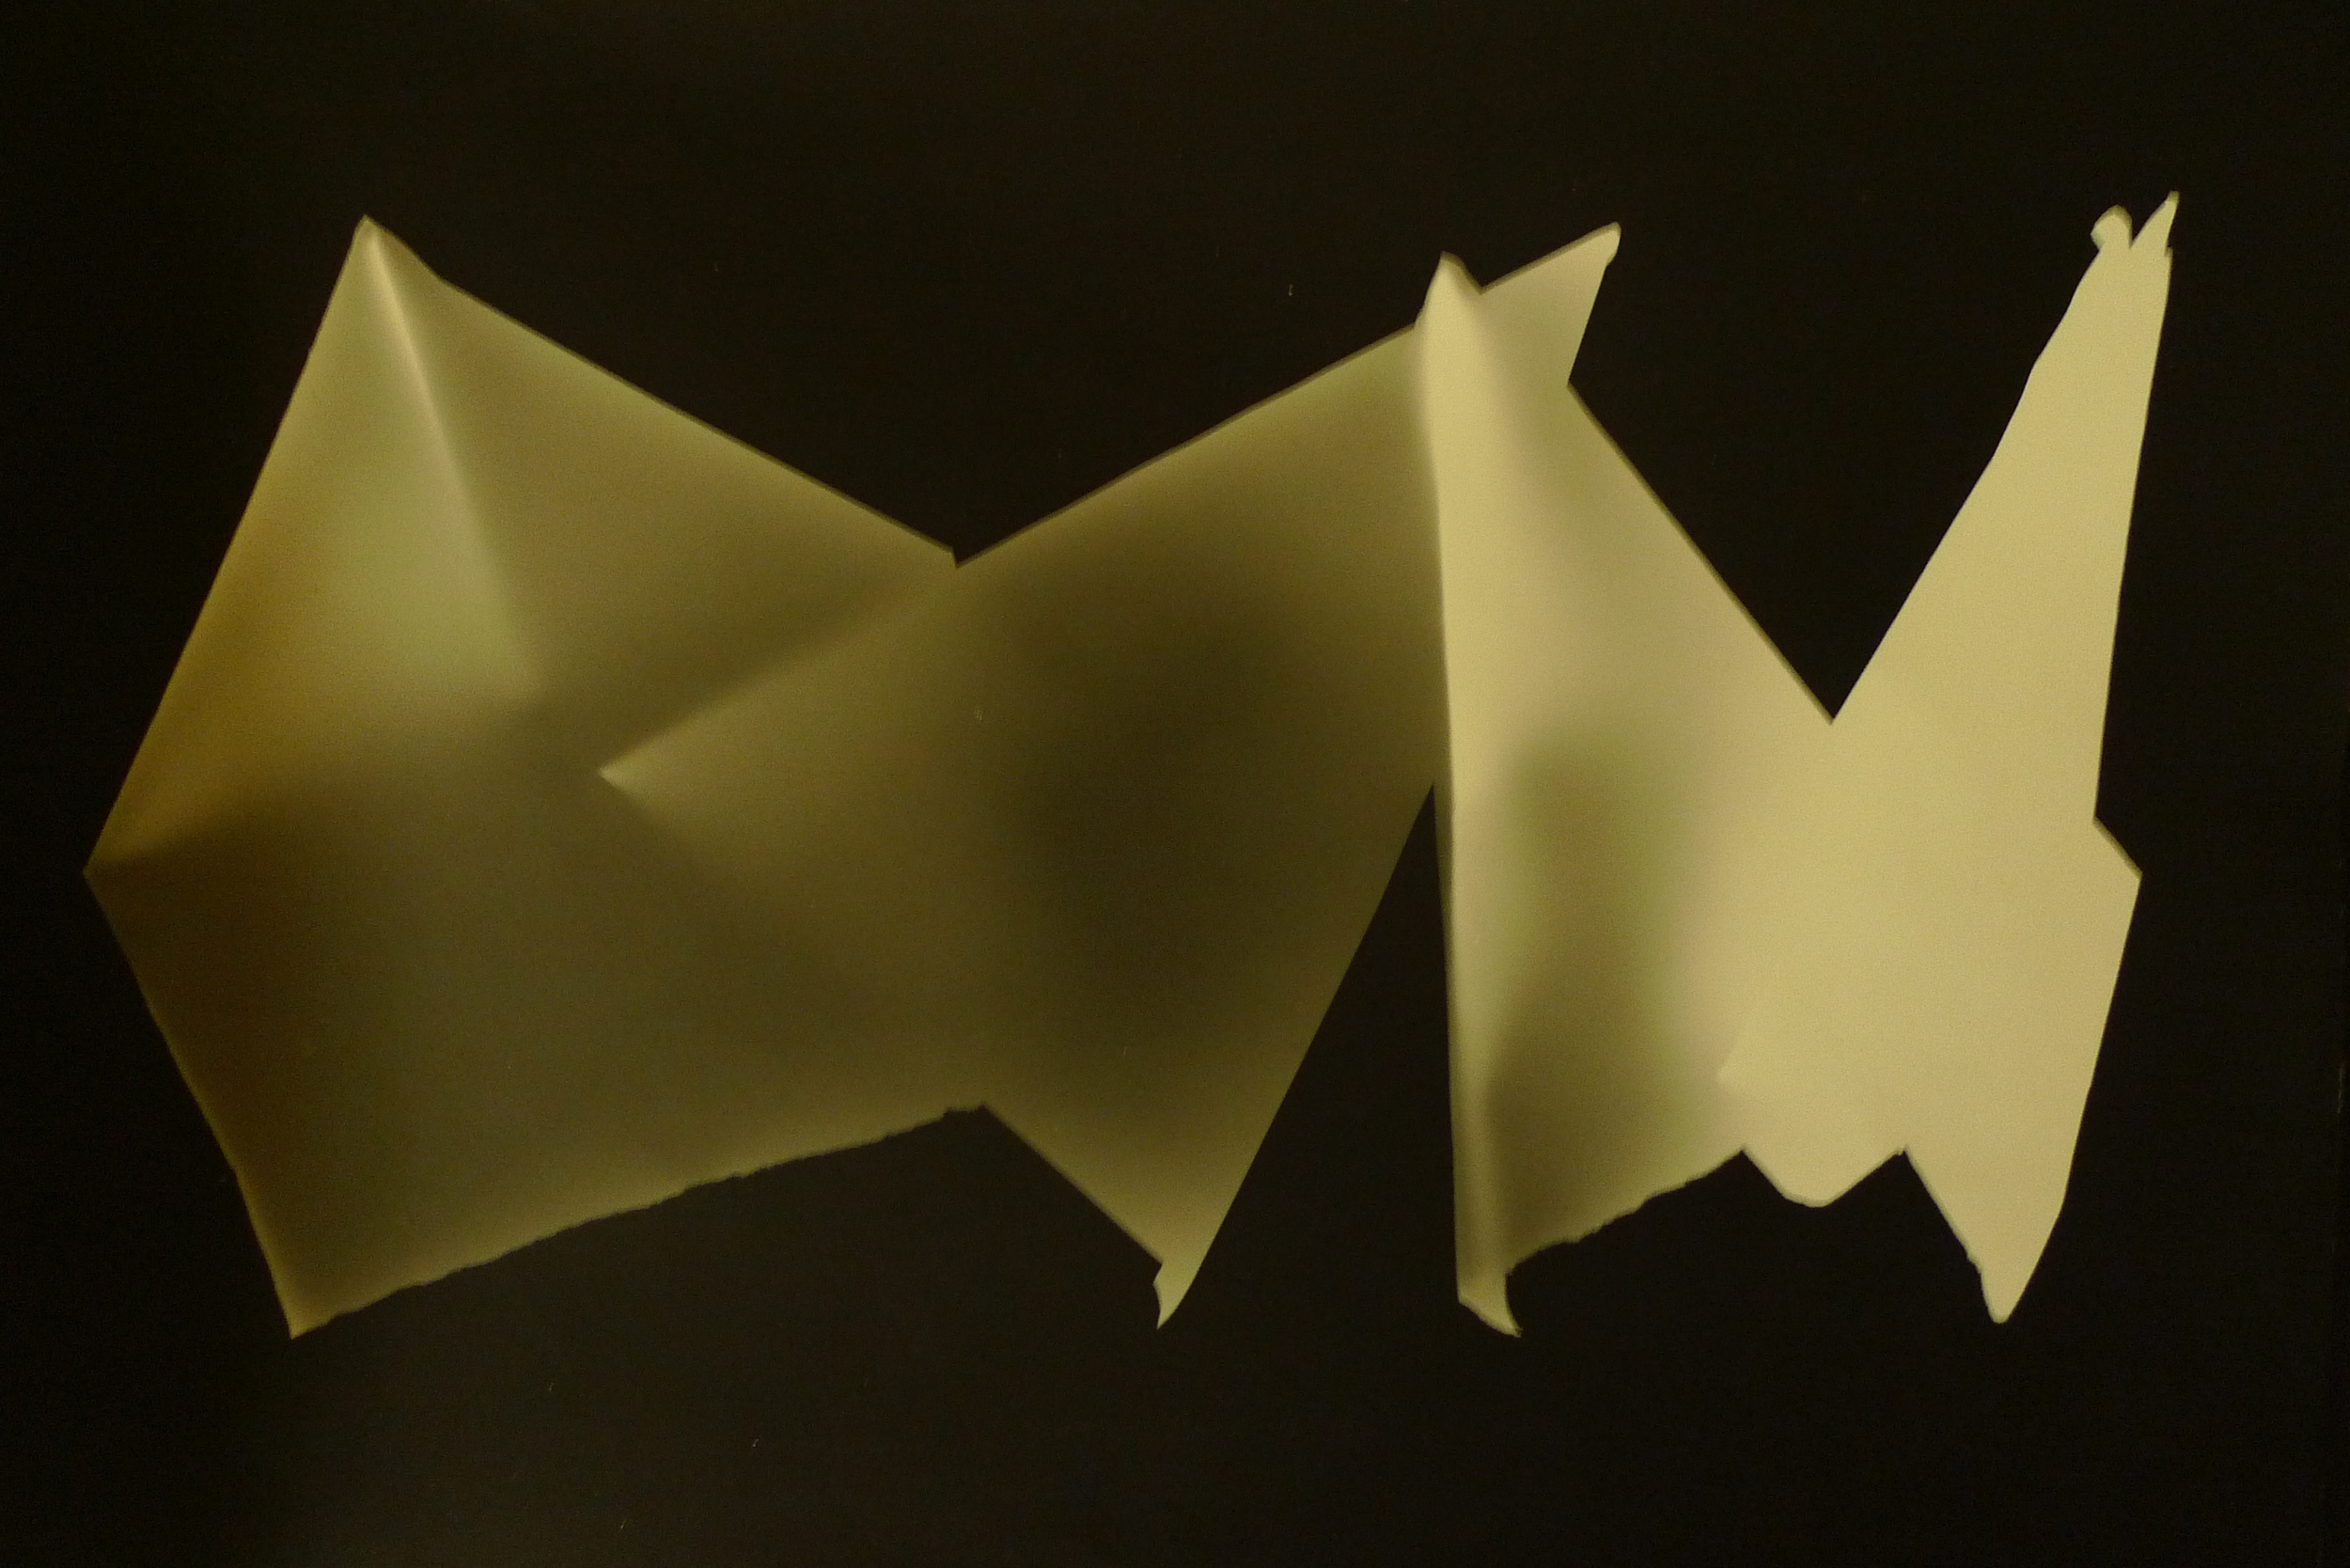 Folded Paper Photograms